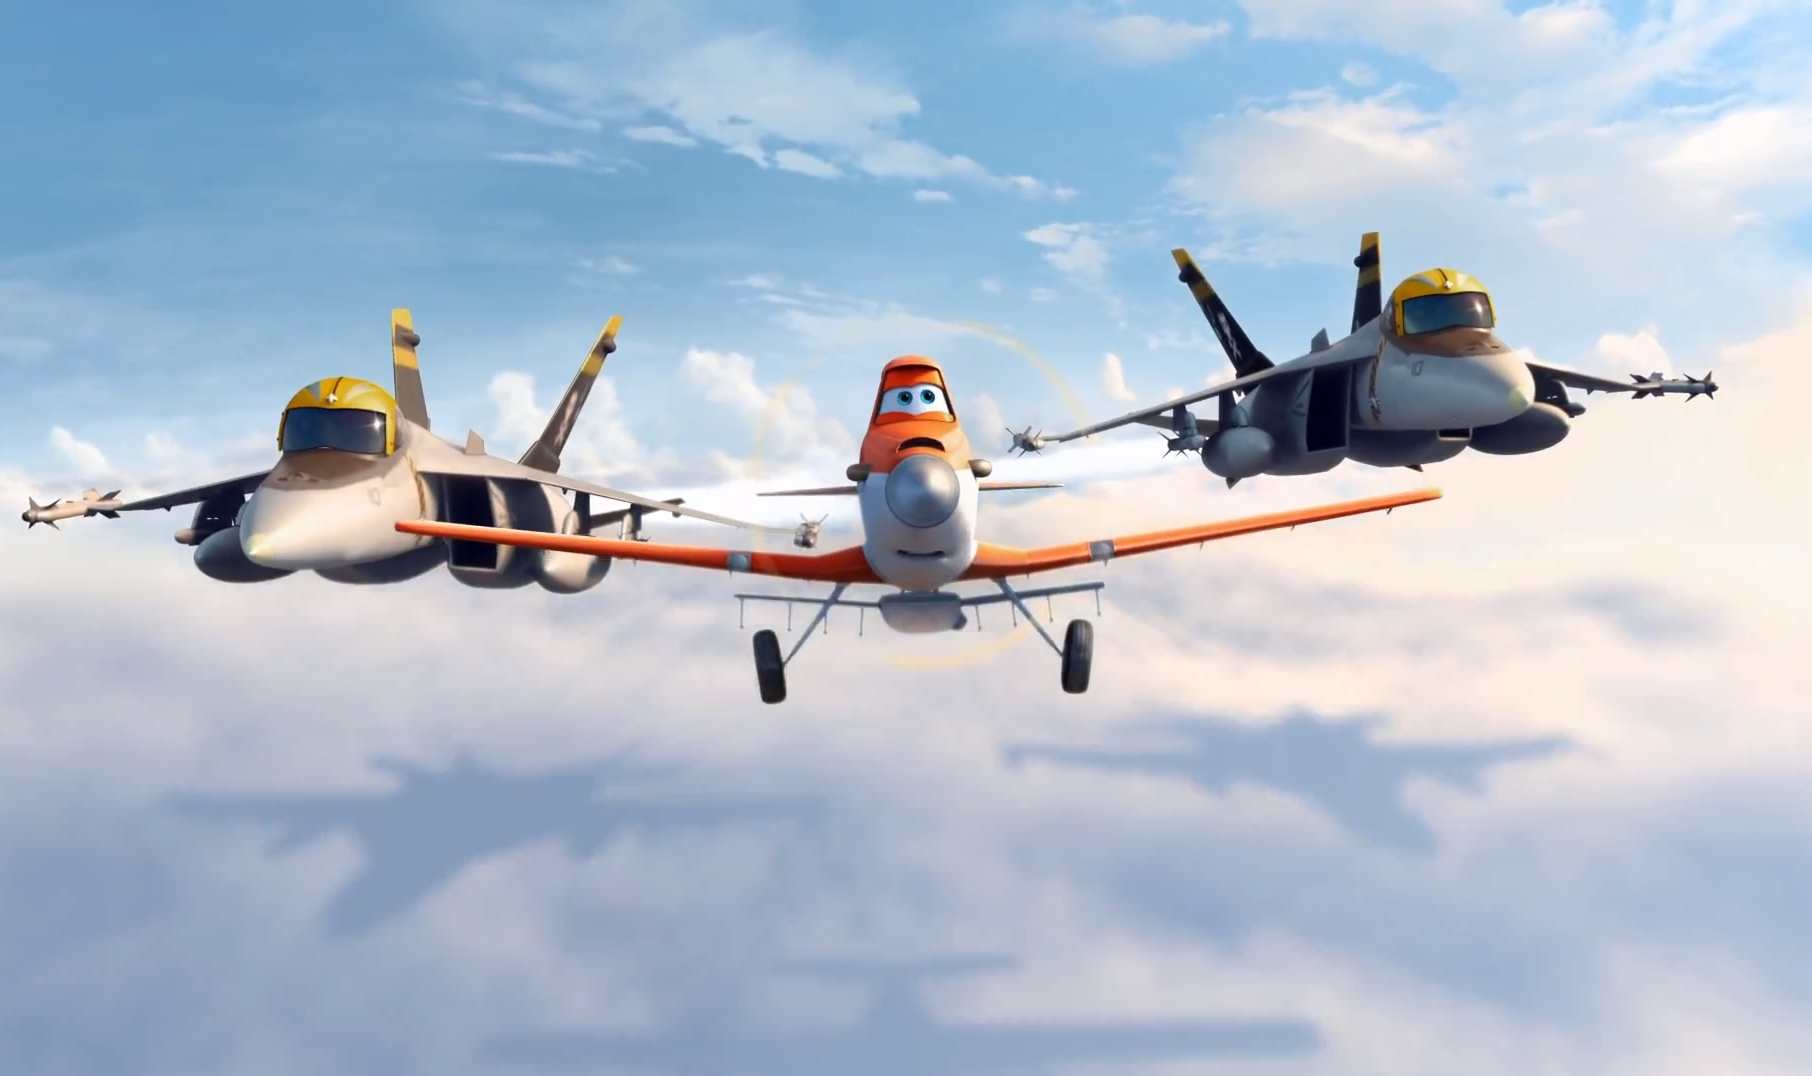 disney pixar planes free desktop wallpaper